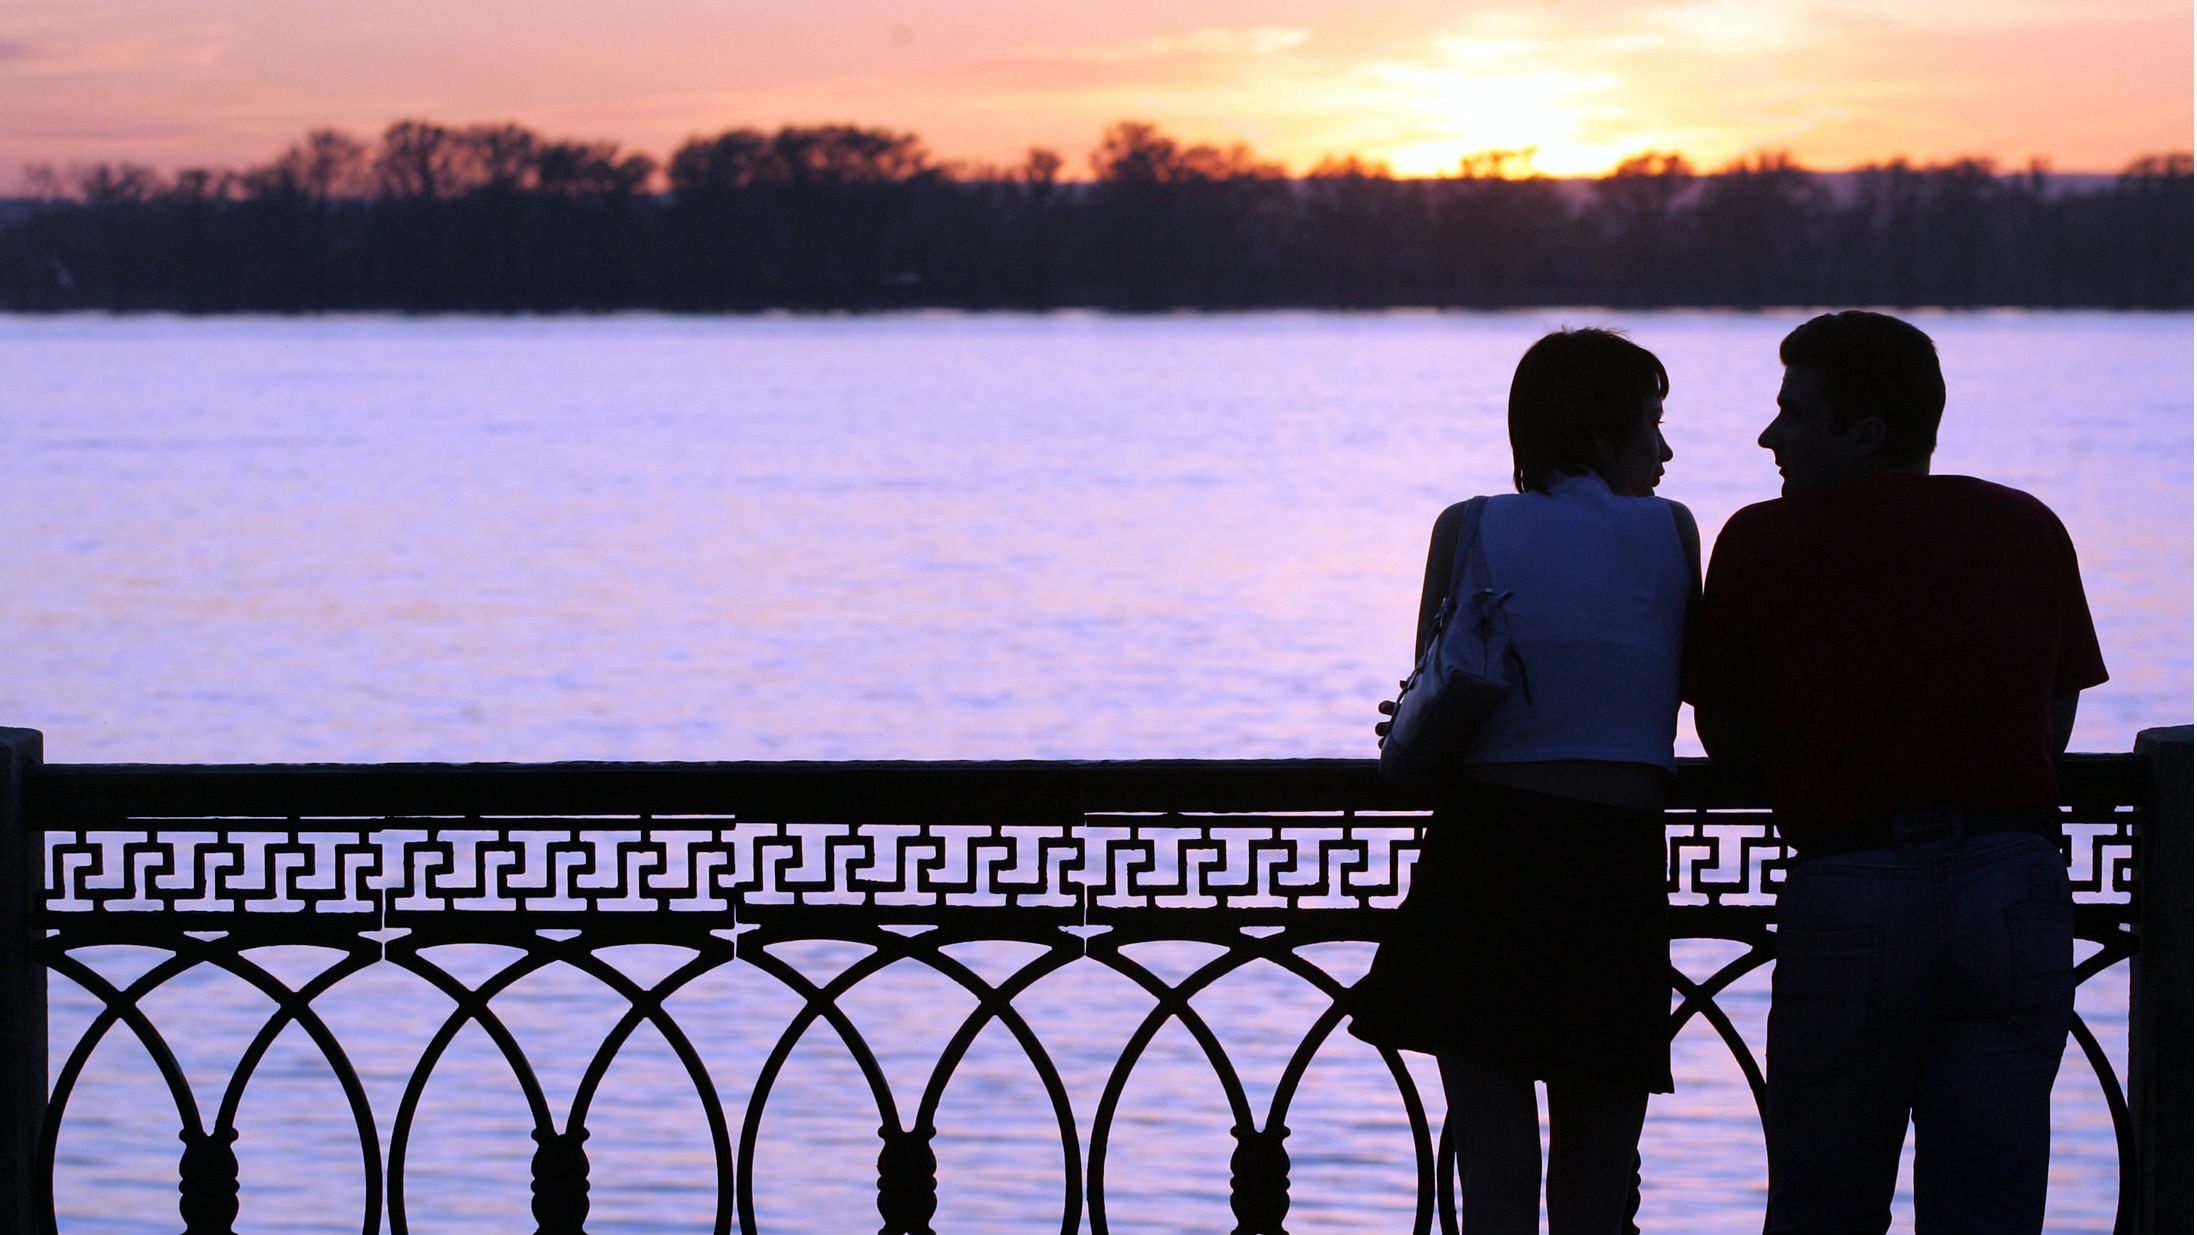 A couple stands close to one another on a bridge at sunset.